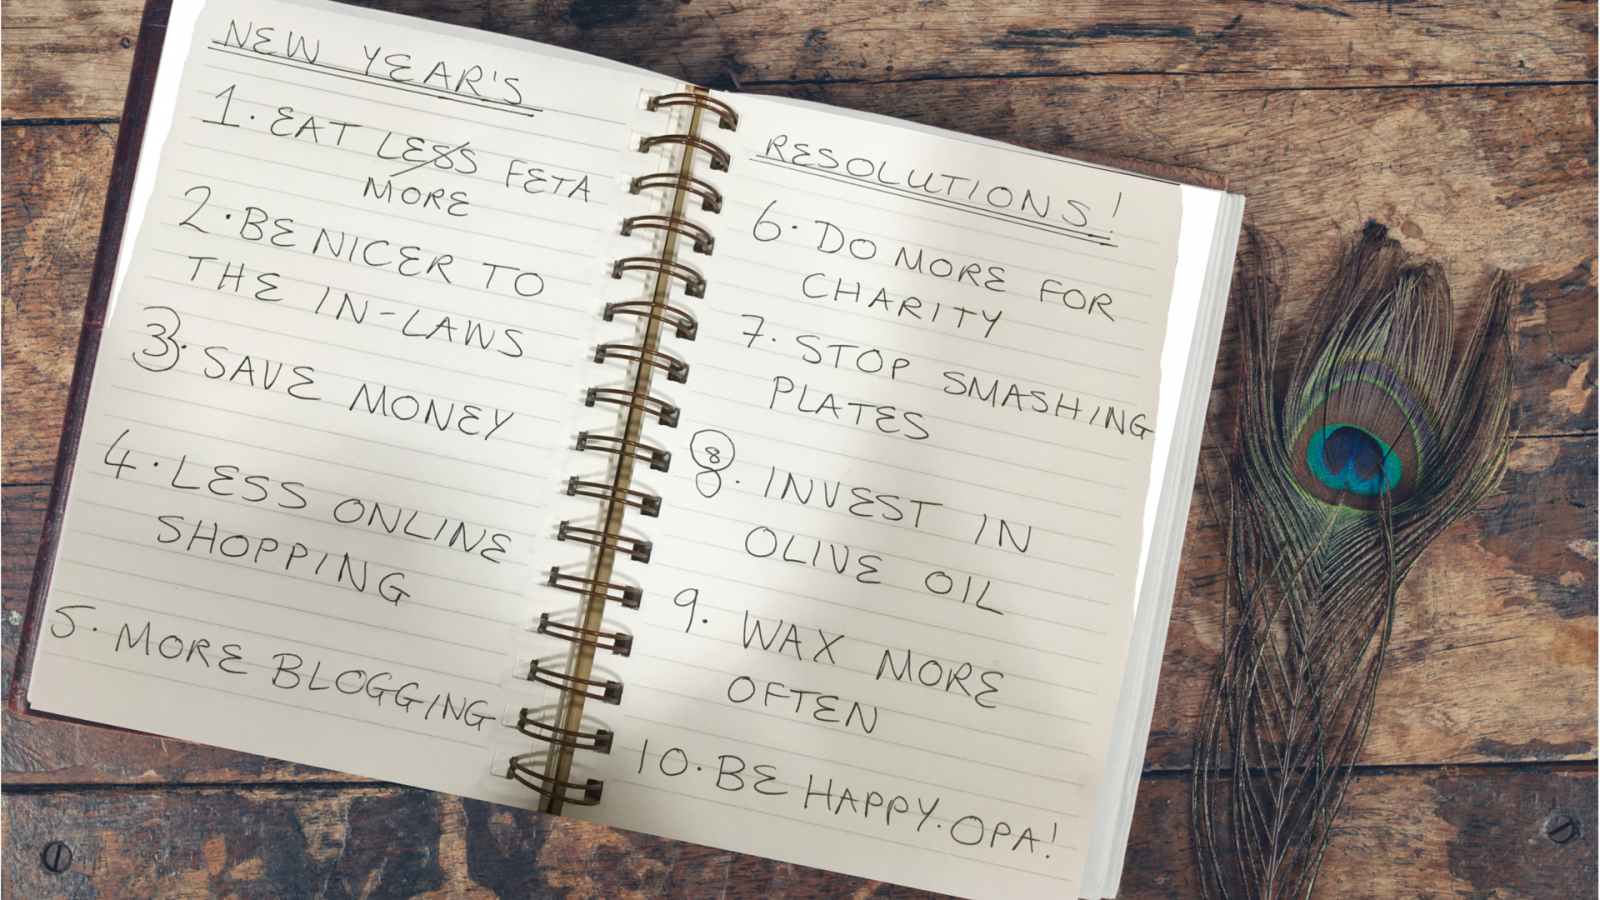 Top 10 GREEK New Year Resolutions